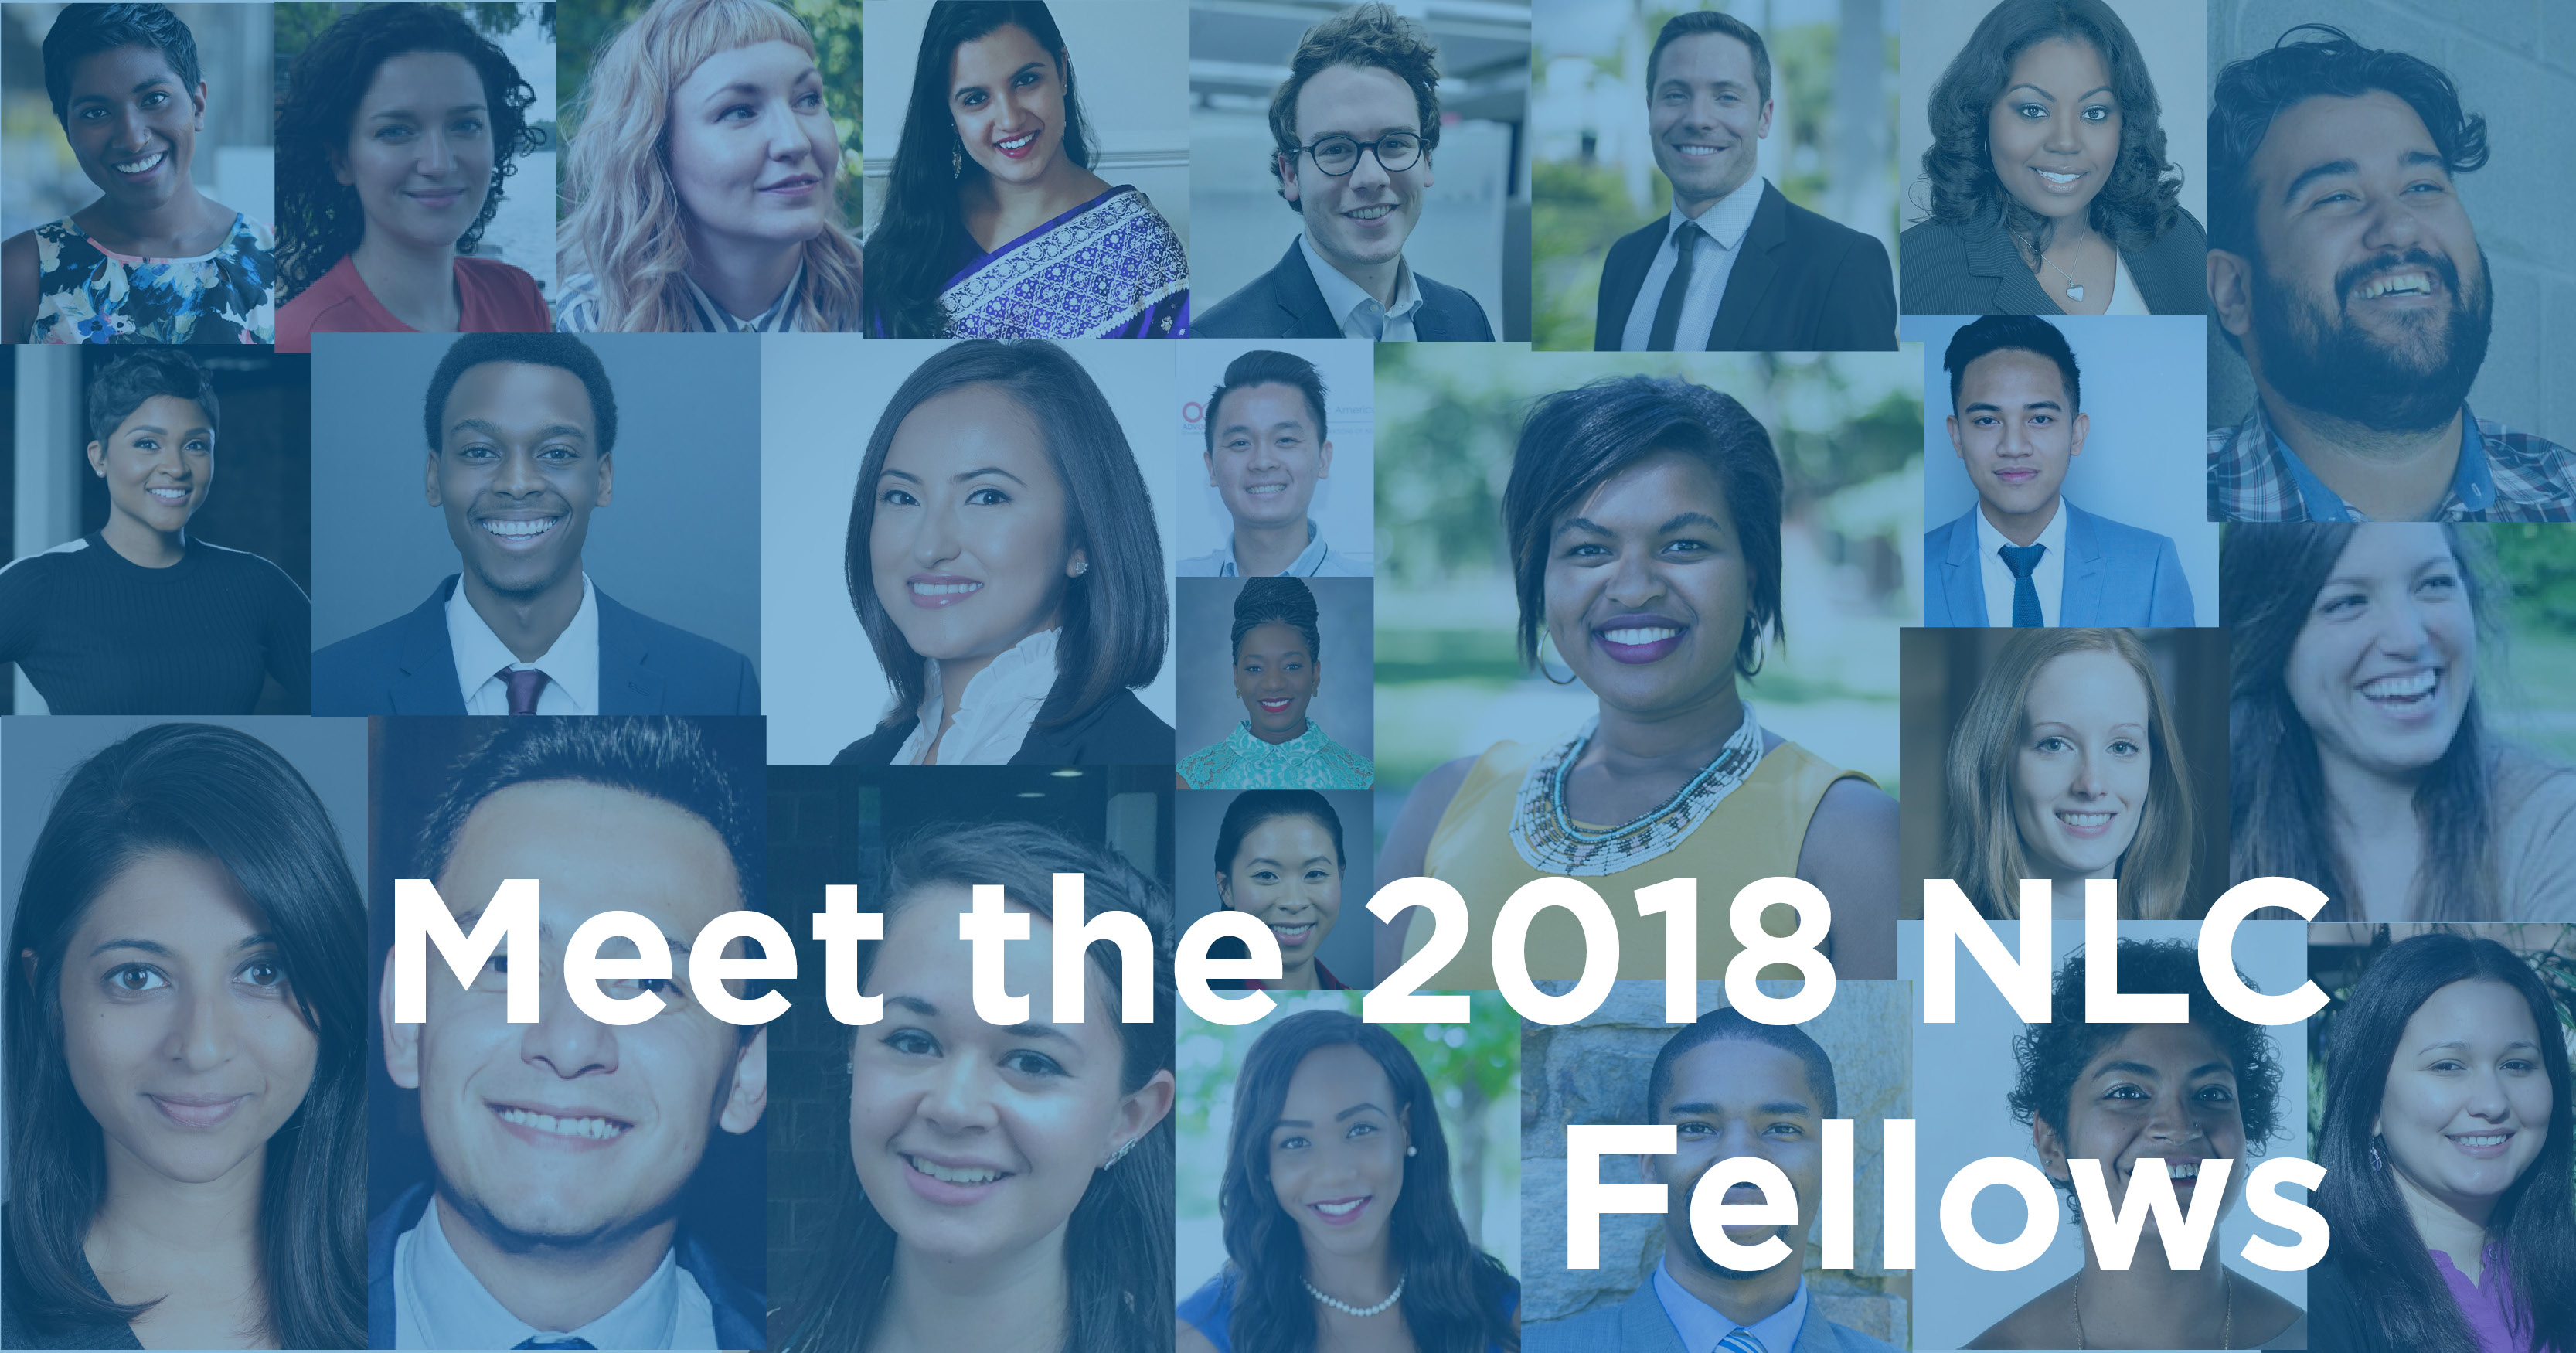 Get to know our nearly 150 Fellows that have joined the NLC Chicago Family